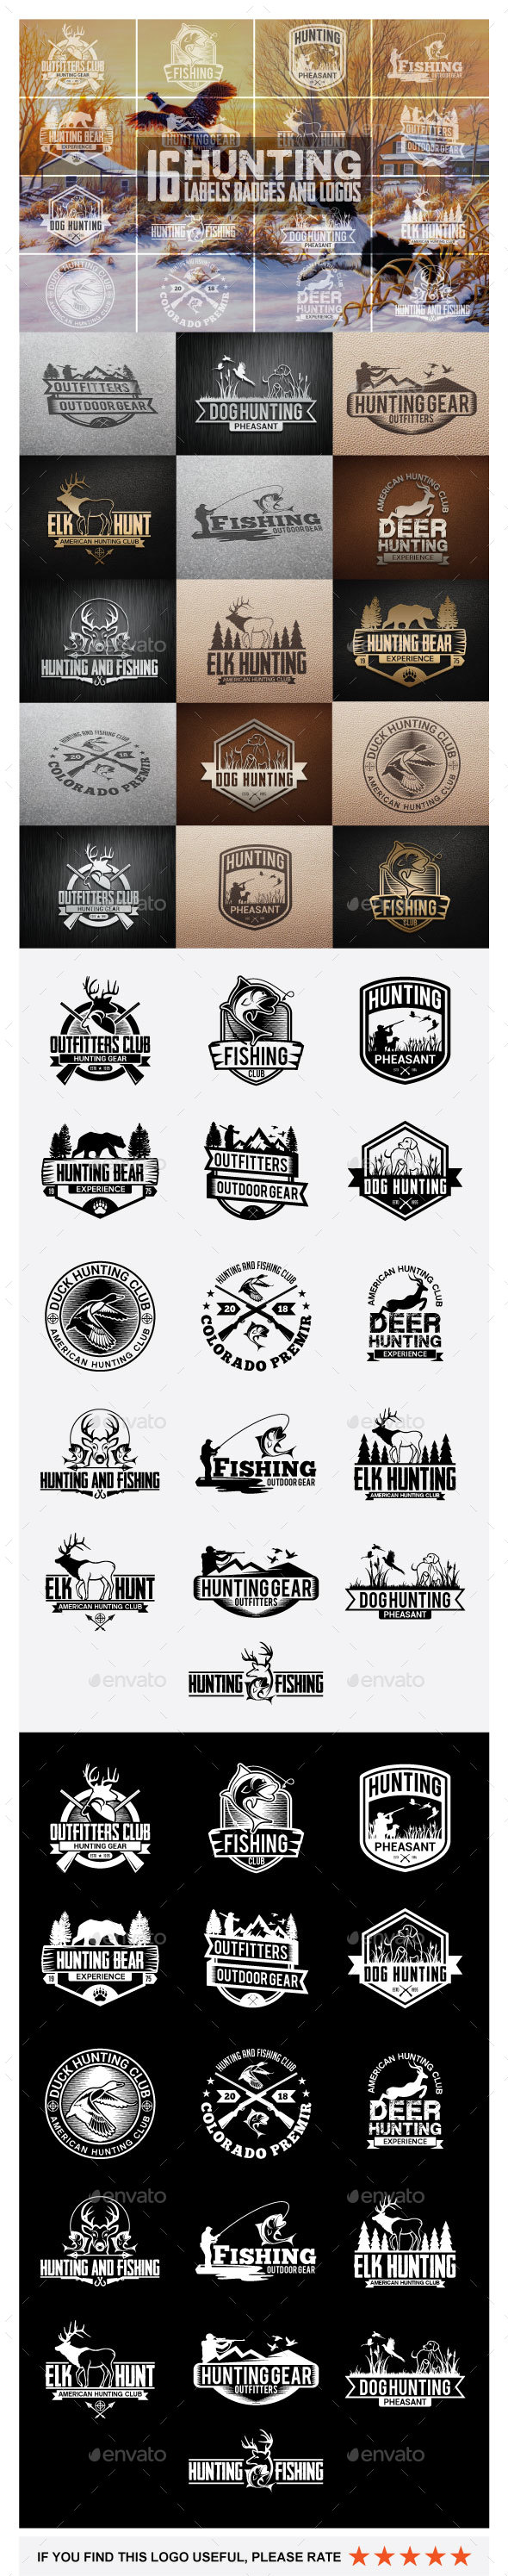 16 Hunting Badges and Logos - Badges & Stickers Web Elements